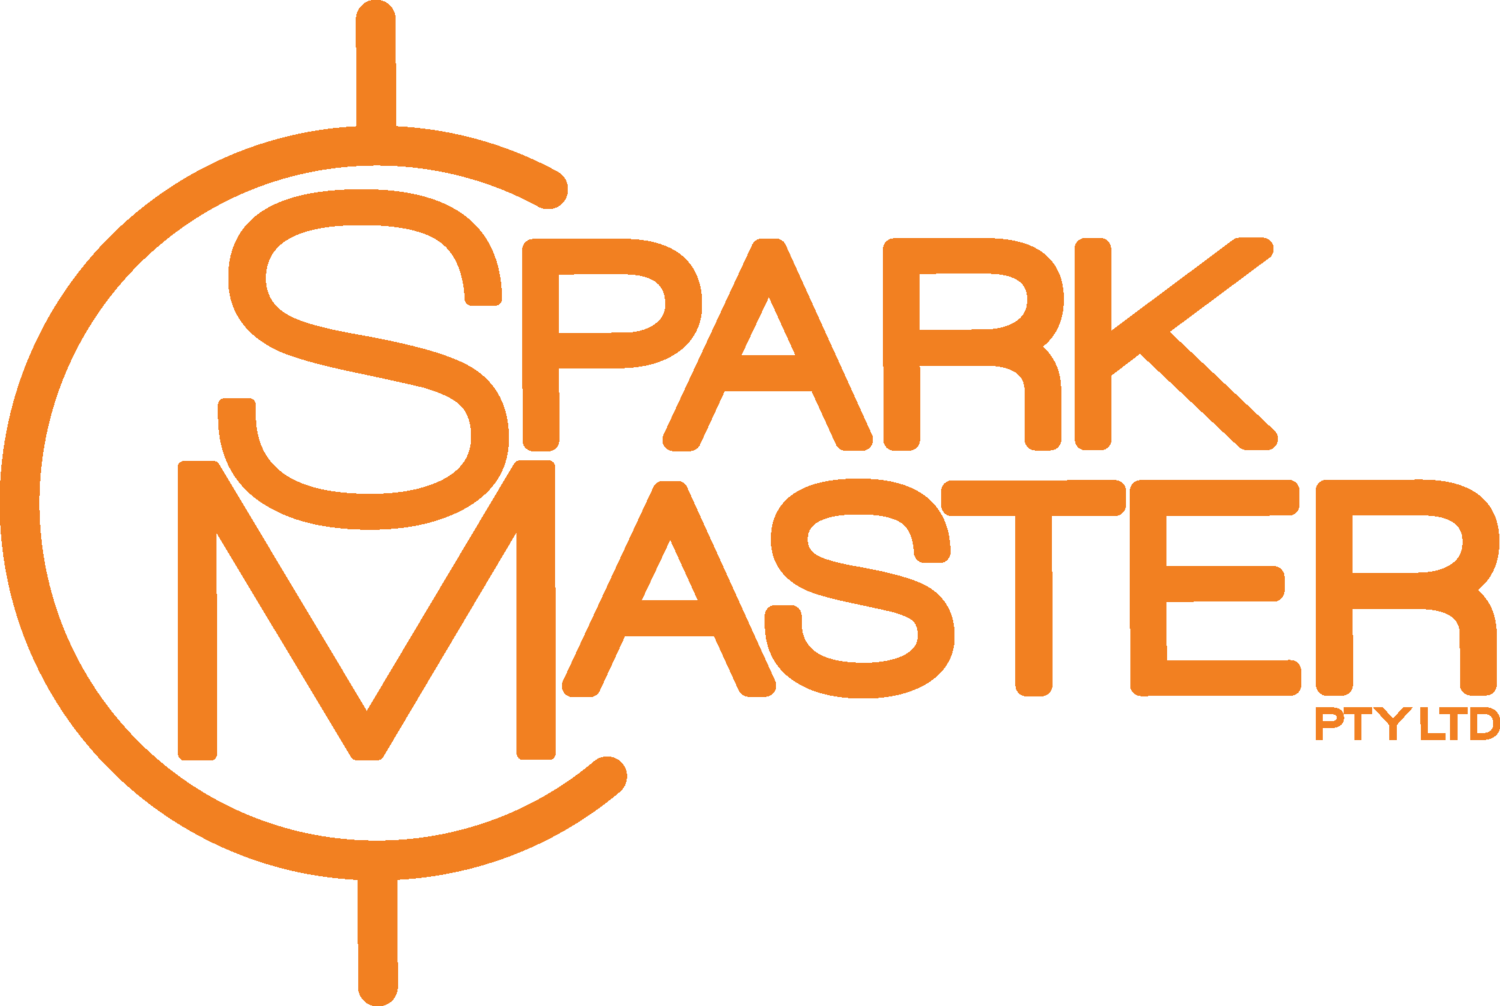 SPARKMASTER PTY LTD